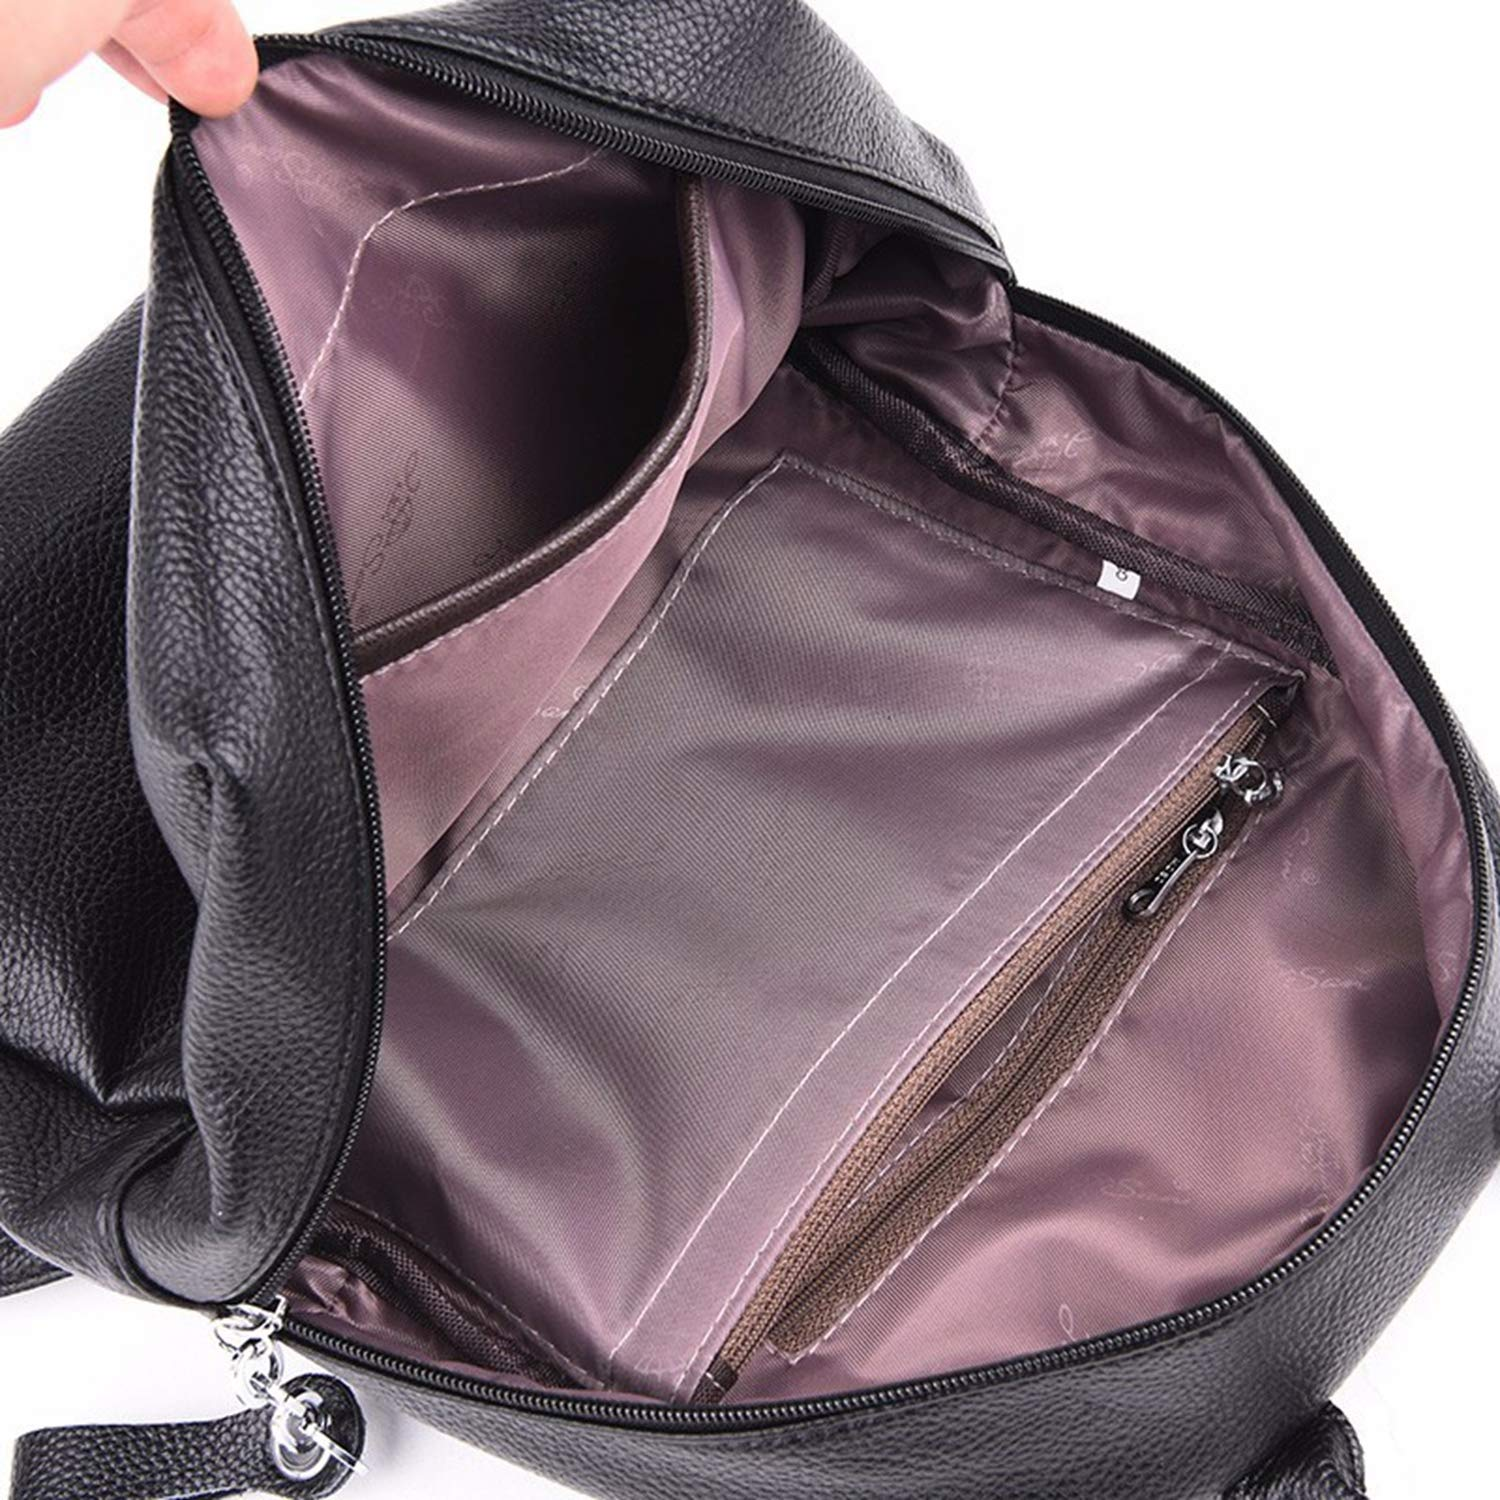 Amazon.com: New Bagpack 2019 Women Leather Backpacks for Girls Large Capacity Travel Bagpack Vintage Female Back Pack School Bags for Girls Mochilas: ...